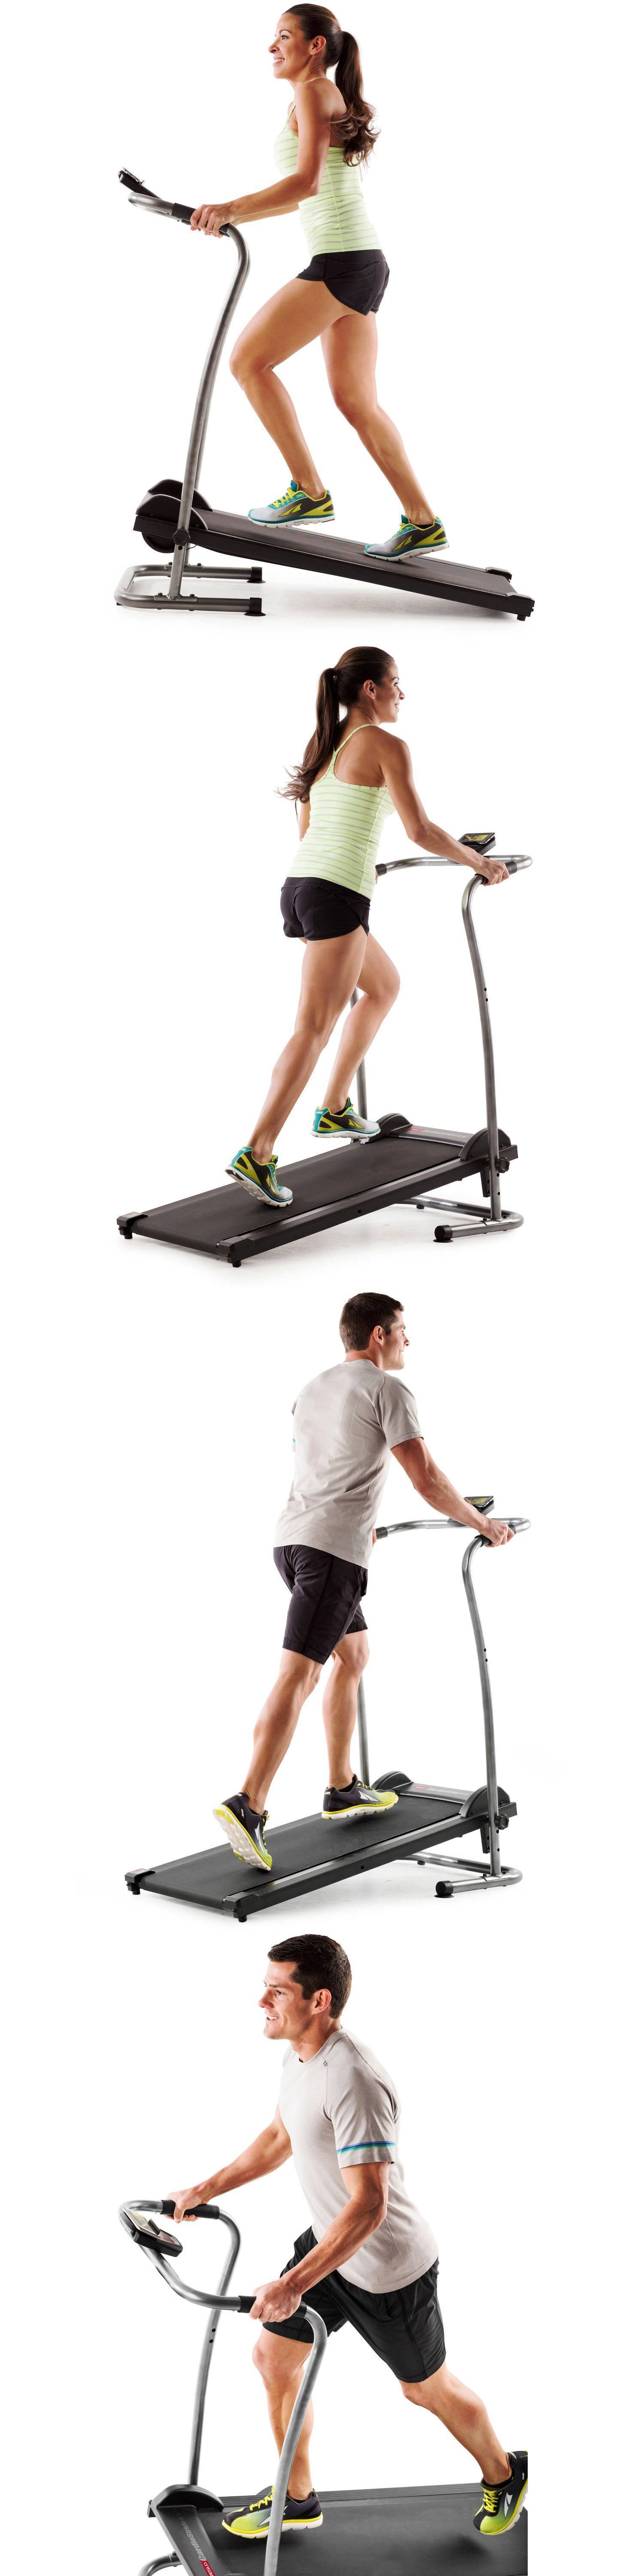 Treadmills 15280 Weslo Cardio Stride 40 Manual Treadmill Workout Wiring Diagram Fitness Gym 2 Position Running